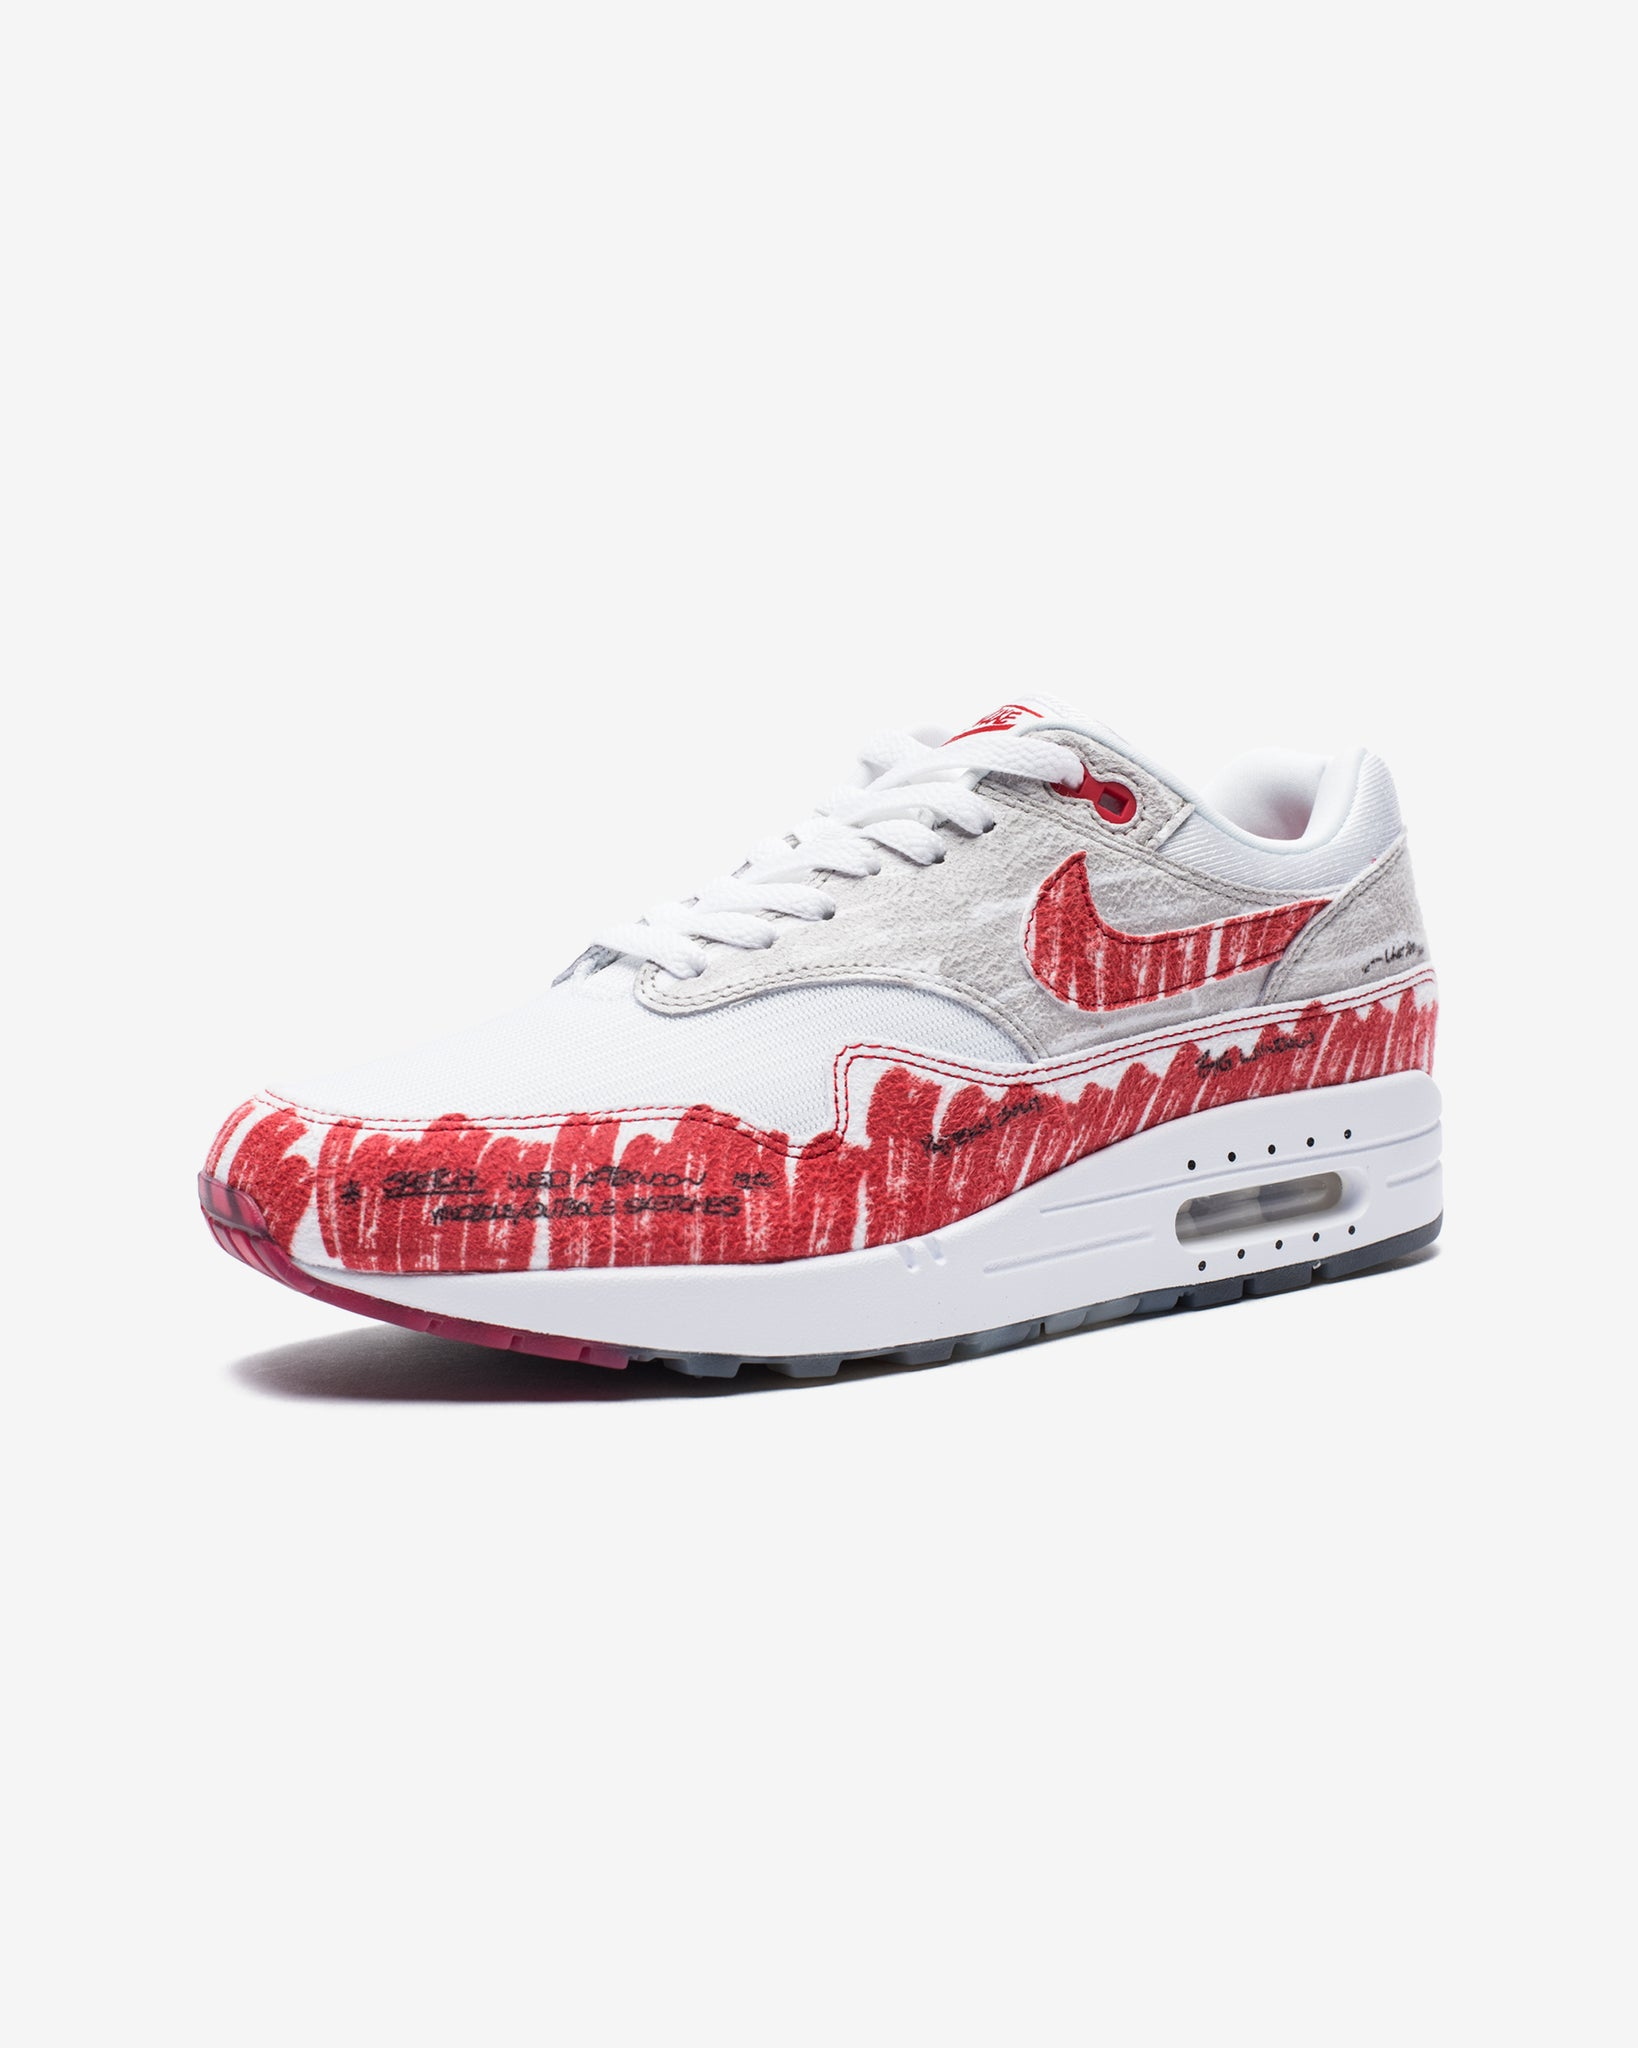 AIR MAX 1 SKETCH TO SHELF - WHITE/UNIVERSITYRED/NEUTRALGREY